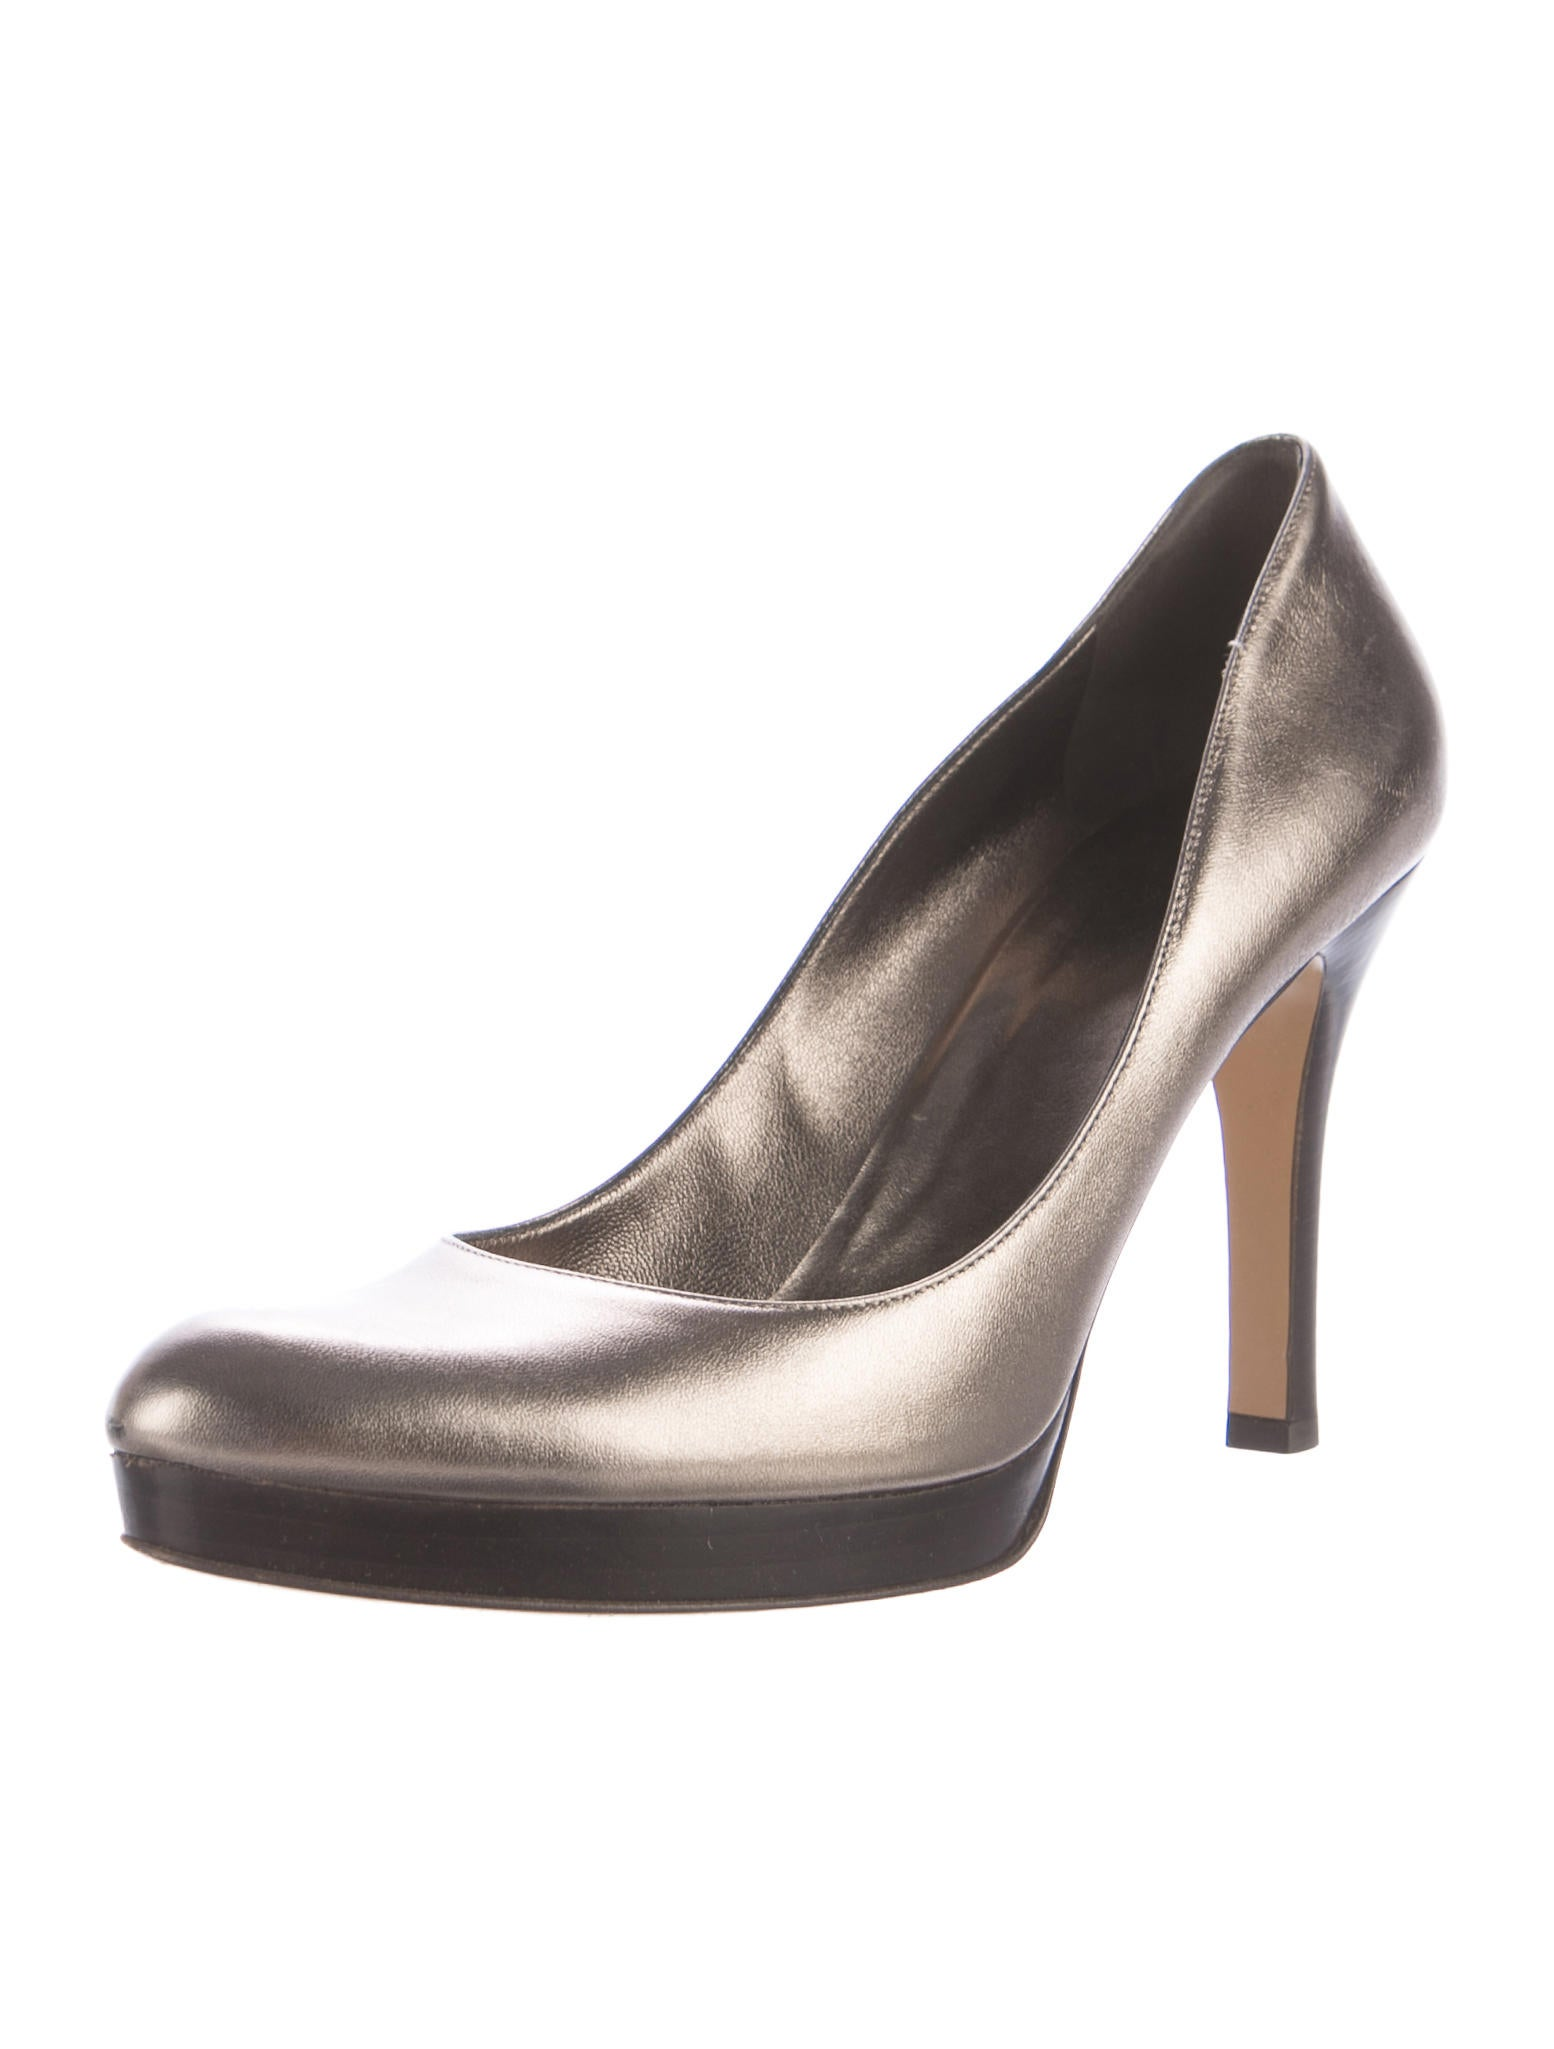 gucci metallic platform pumps shoes guc164379 the